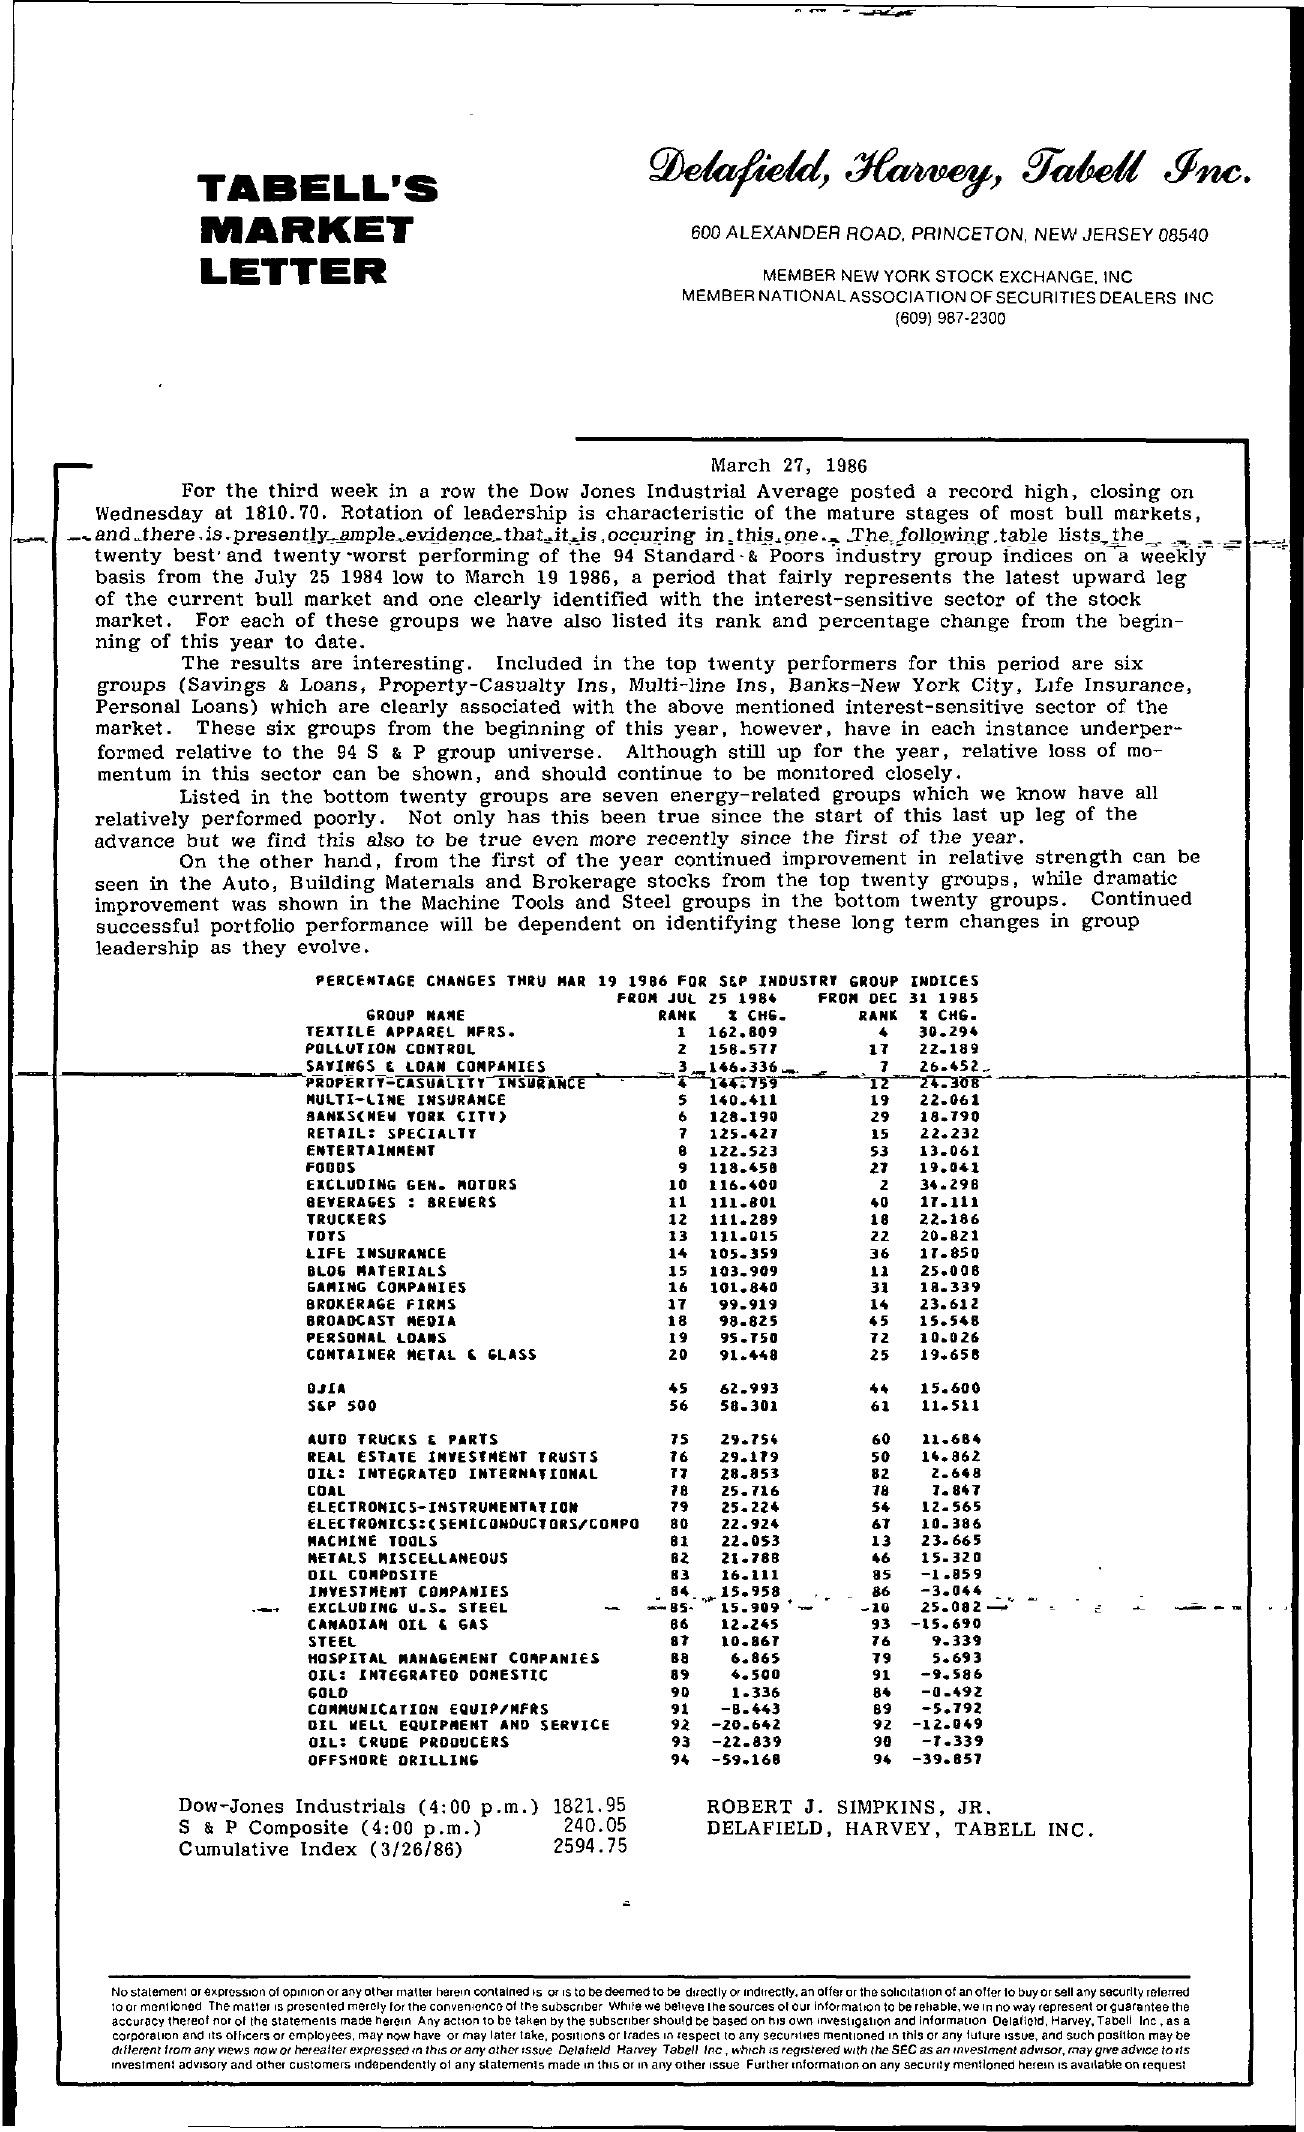 Tabell's Market Letter - March 27, 1986